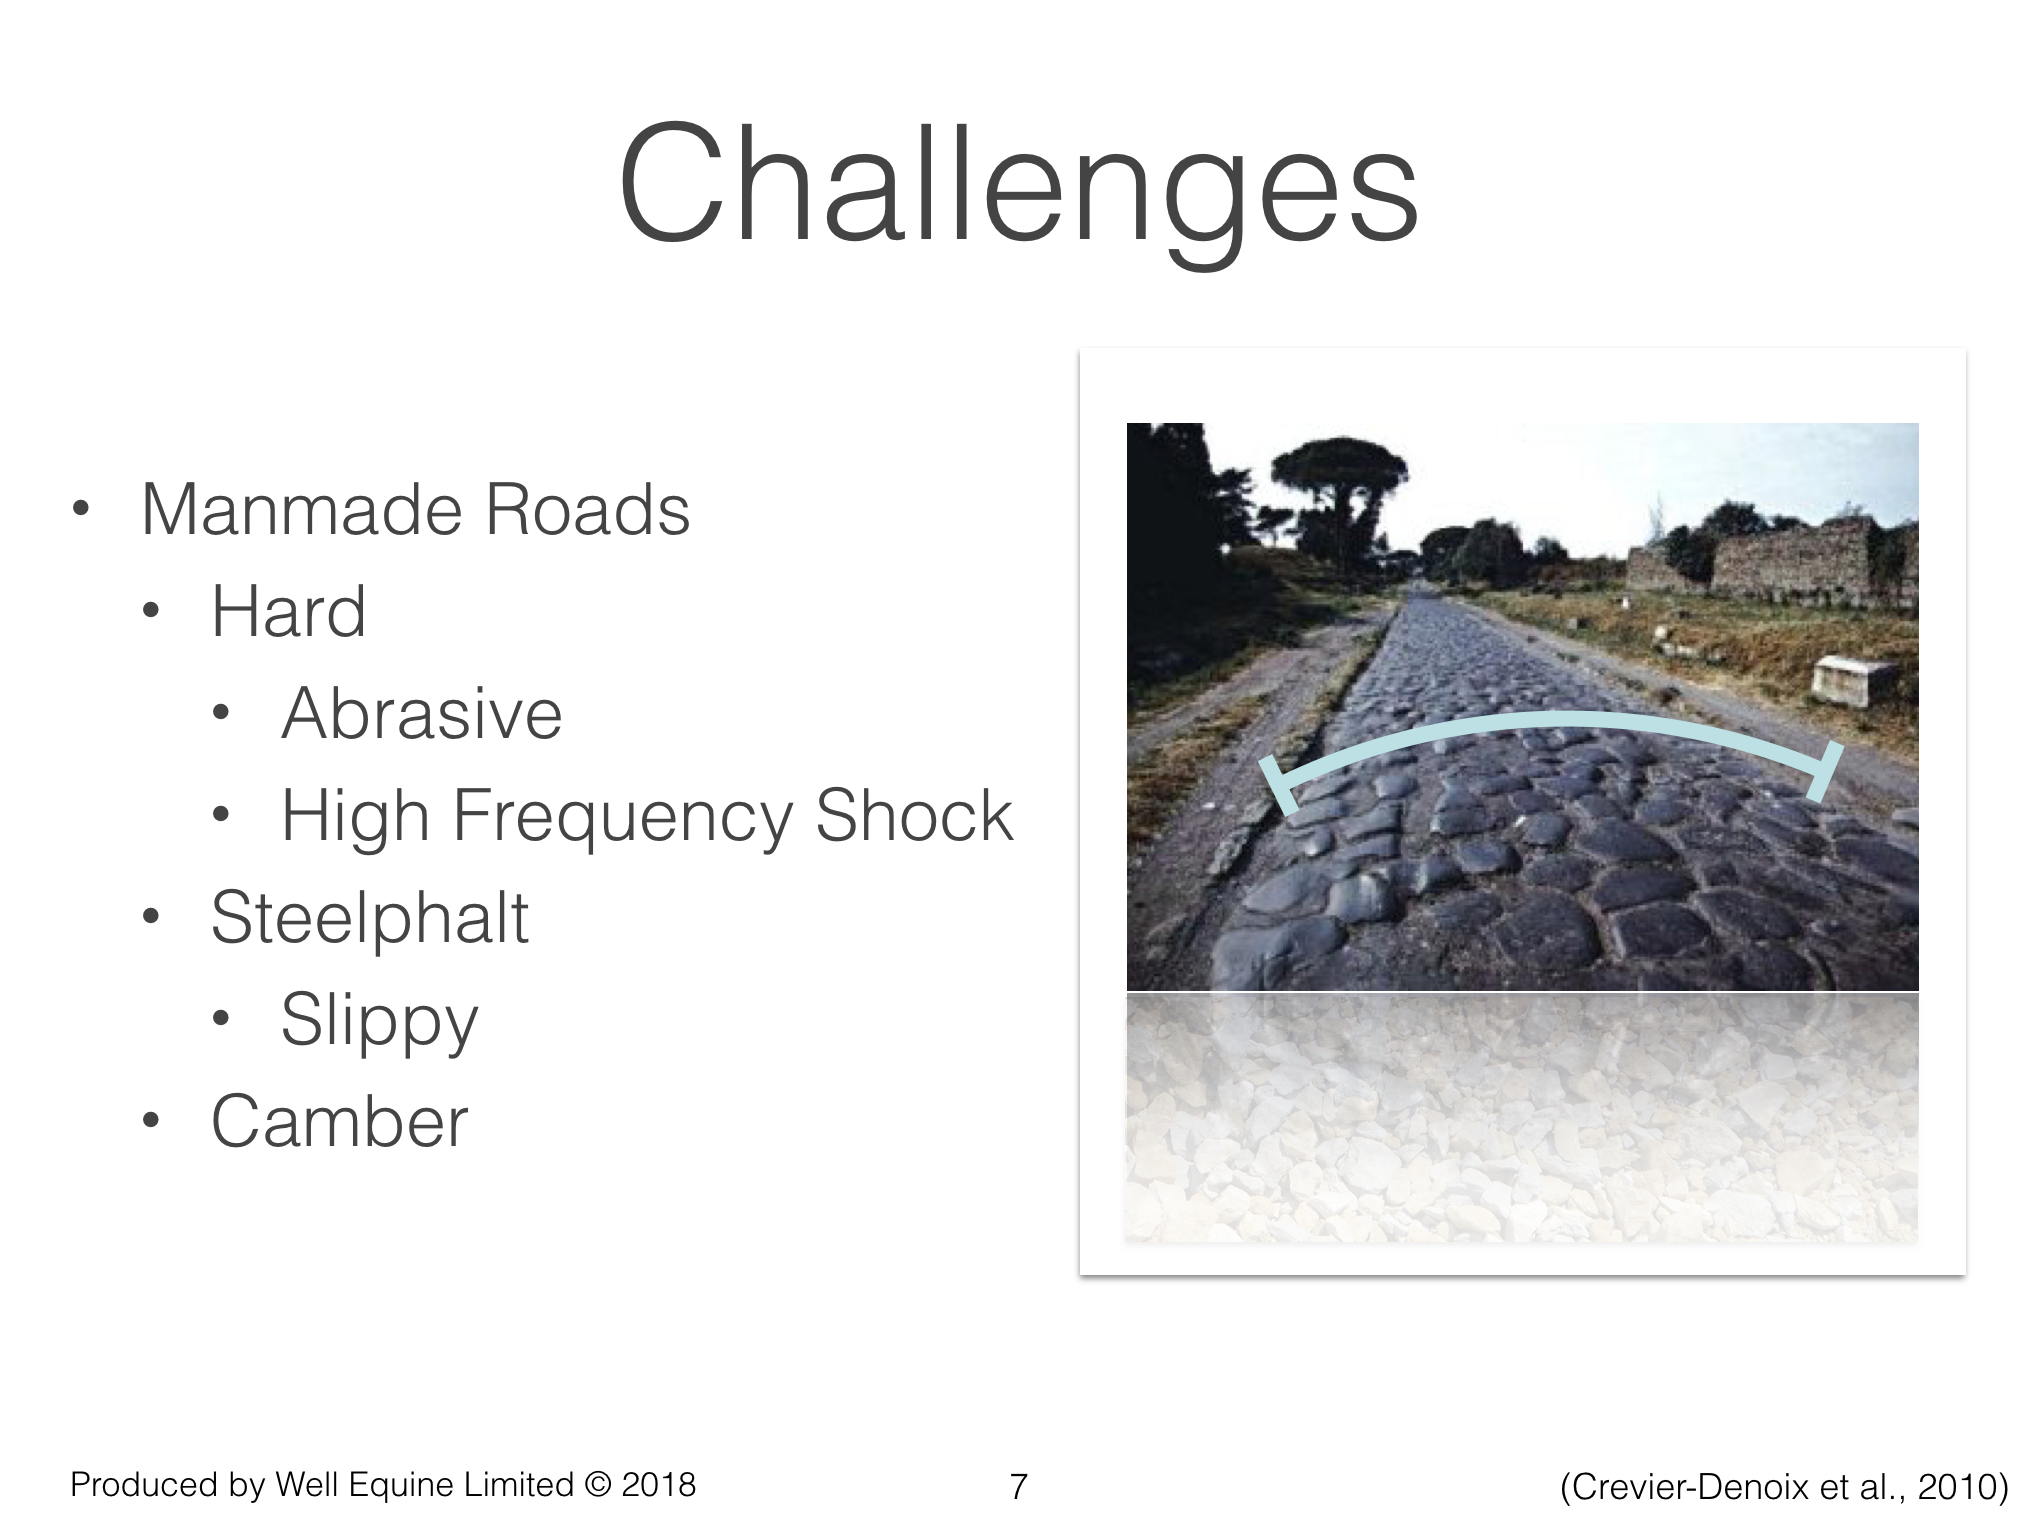 Road Safety - Challenges